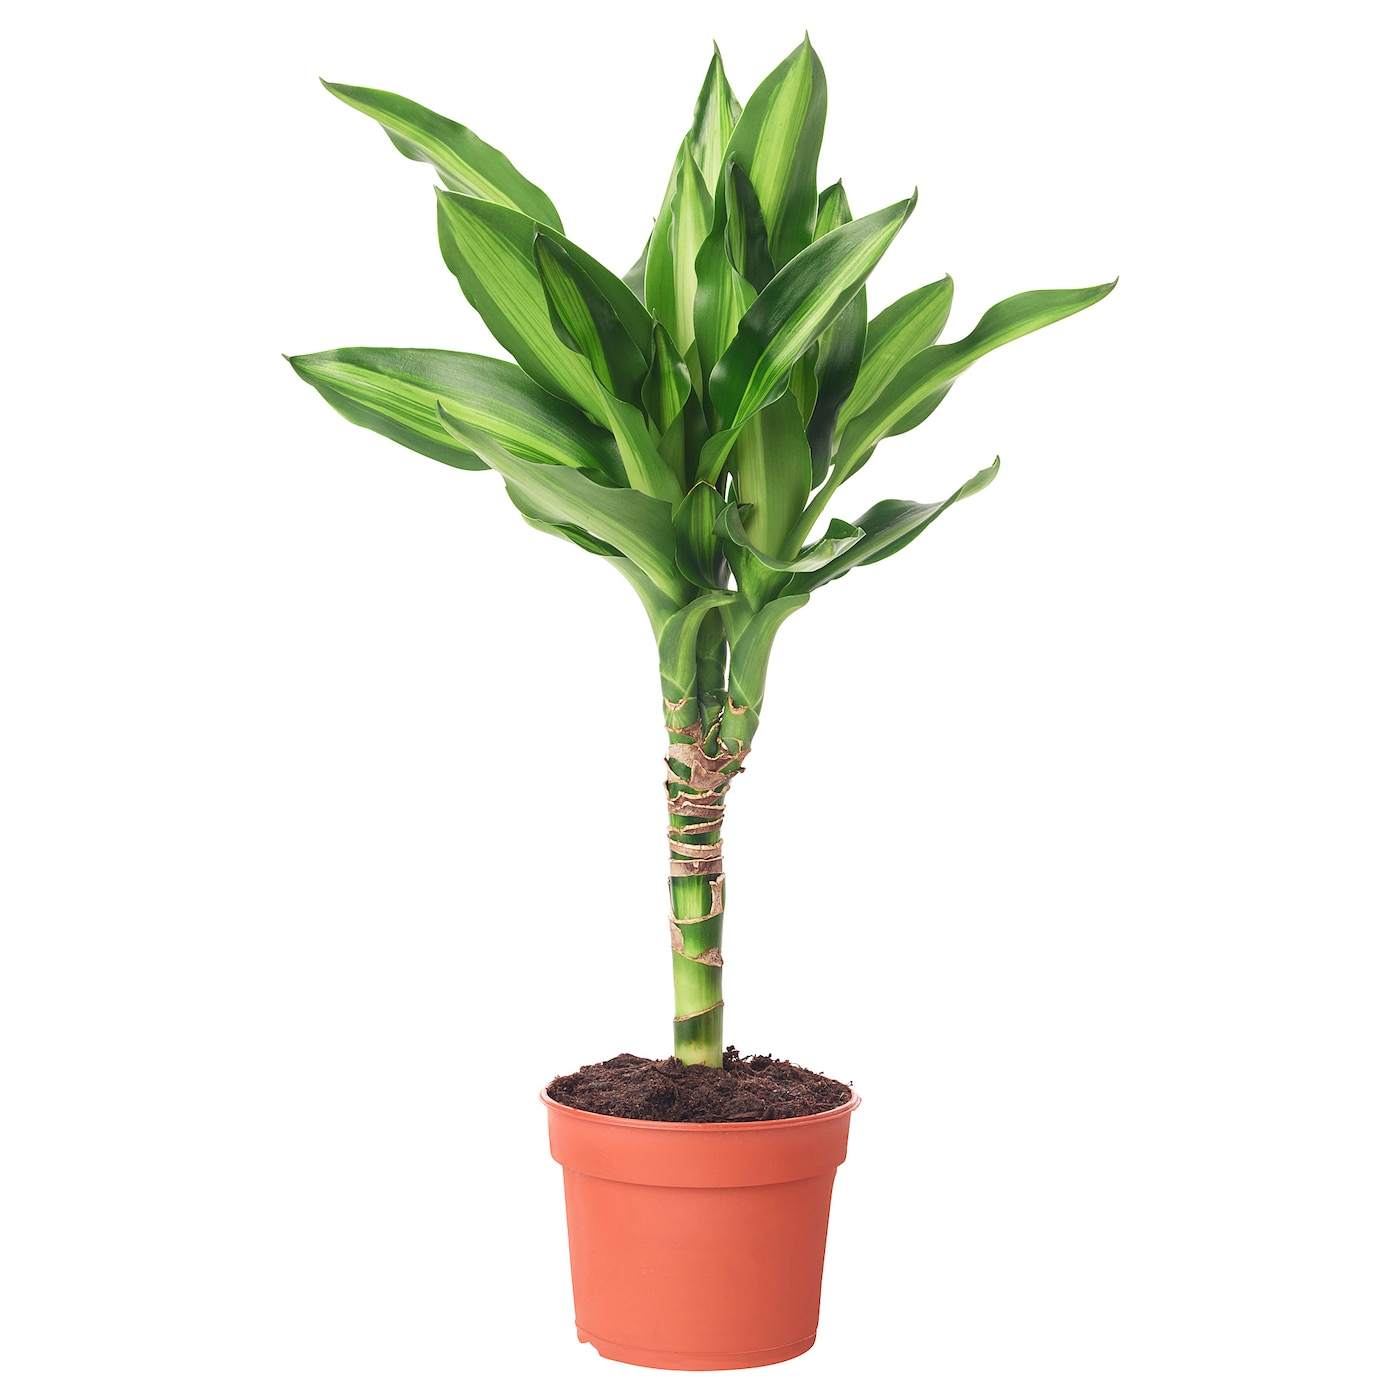 Plantes ikea for Plante en pot